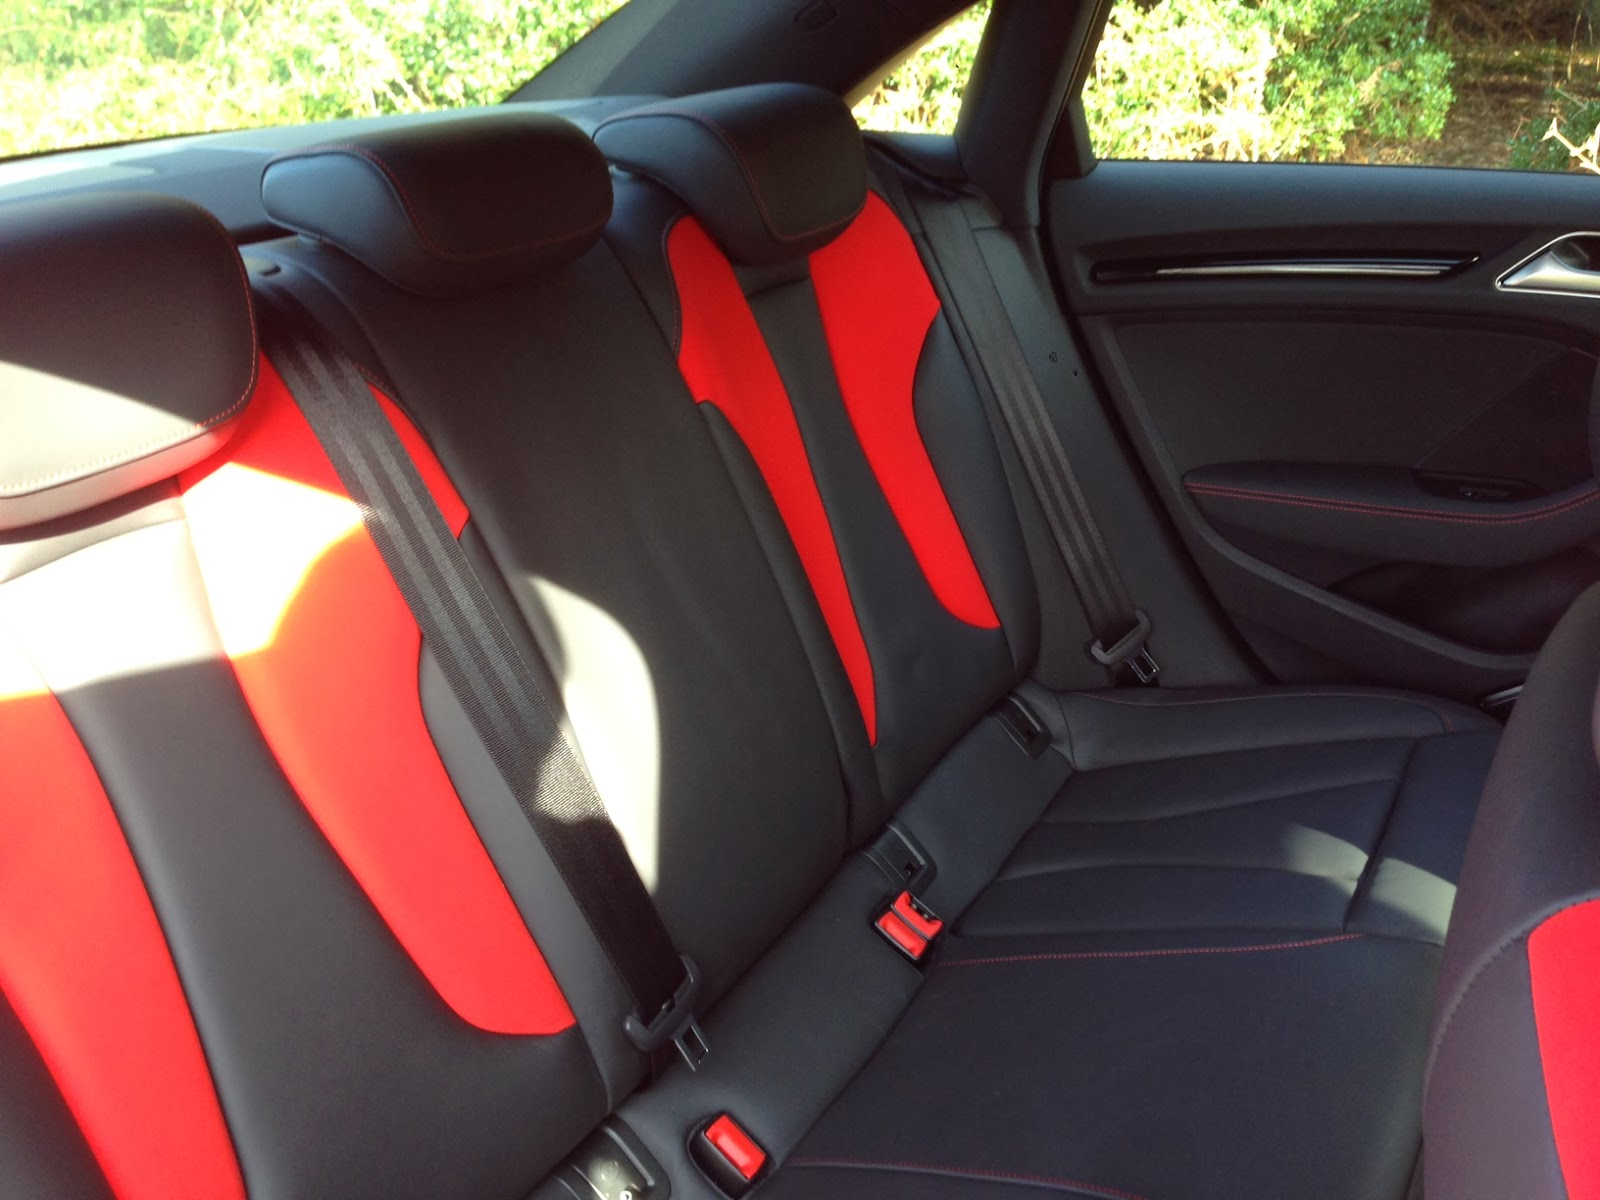 2014 Audi S3 Saloon rear seats